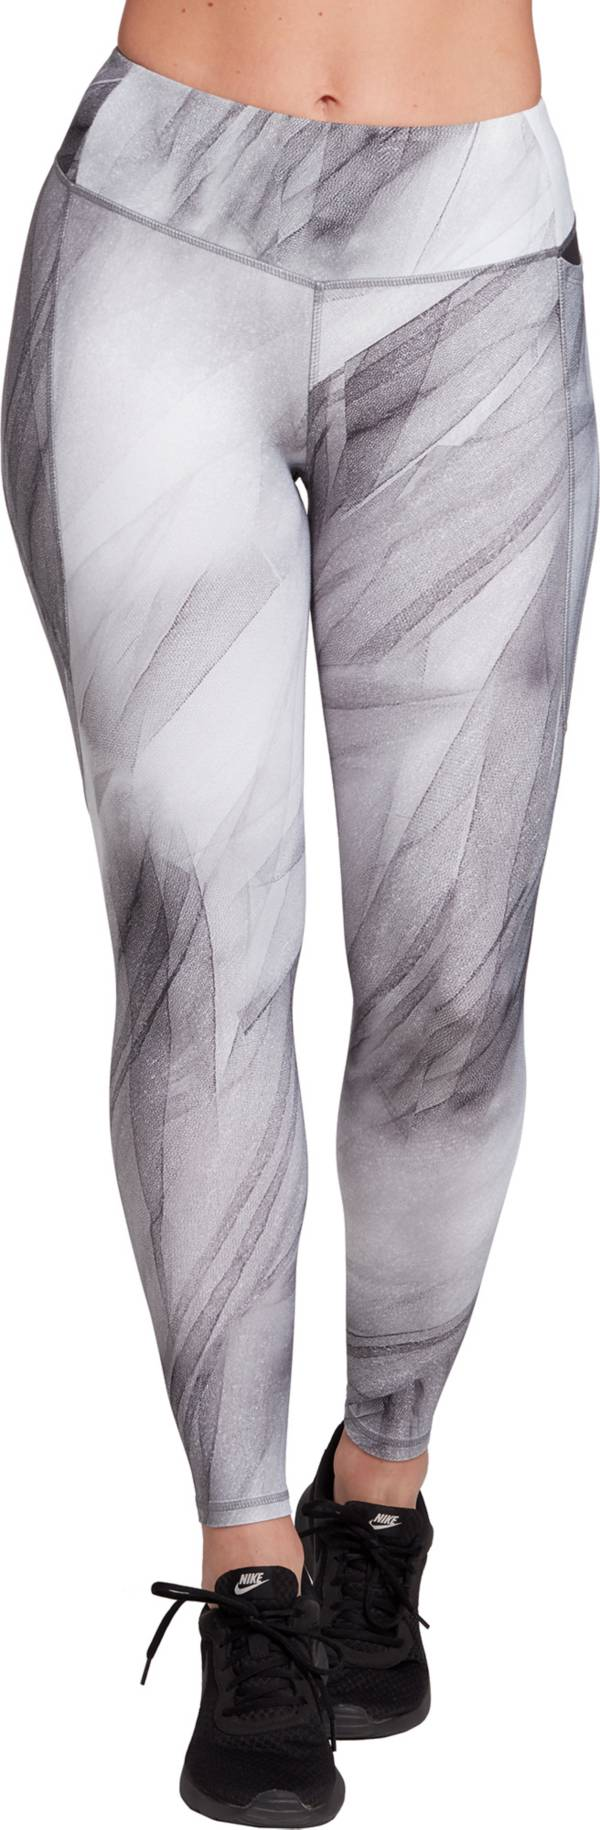 CALIA by Carrie Underwood Women's Energize Printed 7/8 Leggings product image